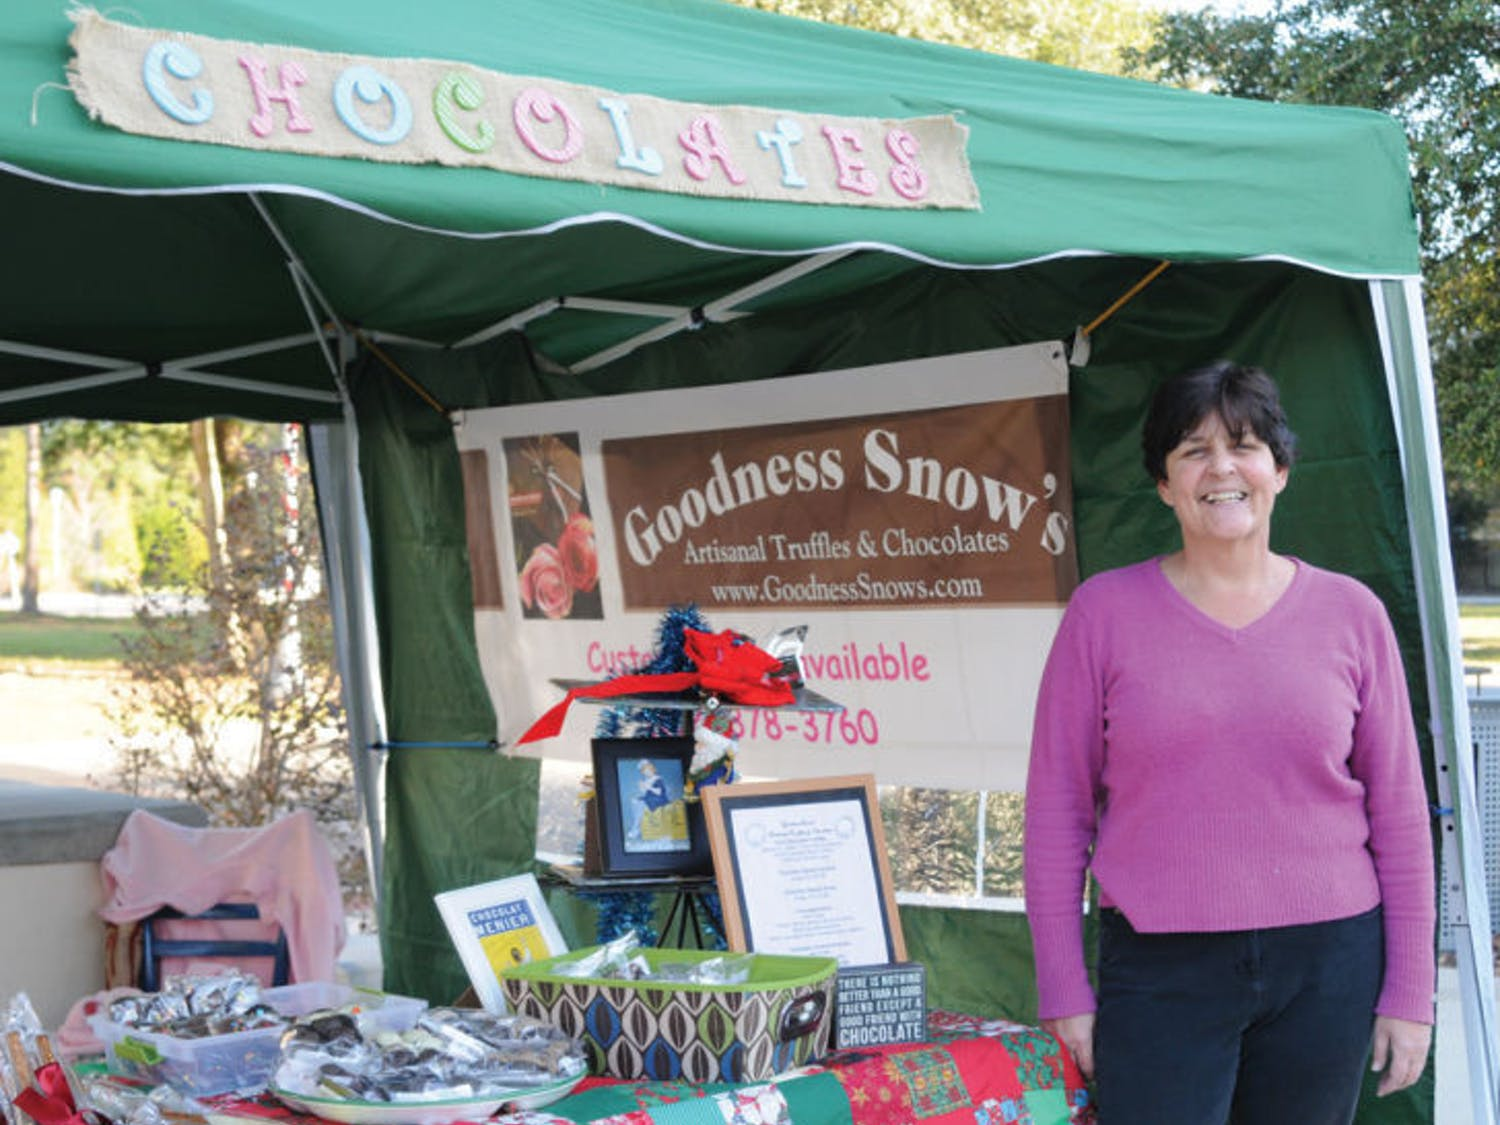 Gwen Thompson, owner of Goodness Snow's, smiles next to the stand she and her husband sell their chocolates from. They frequently set up shop in the Tioga Town Center from 3 to 6 p.m. on Monday afternoons.